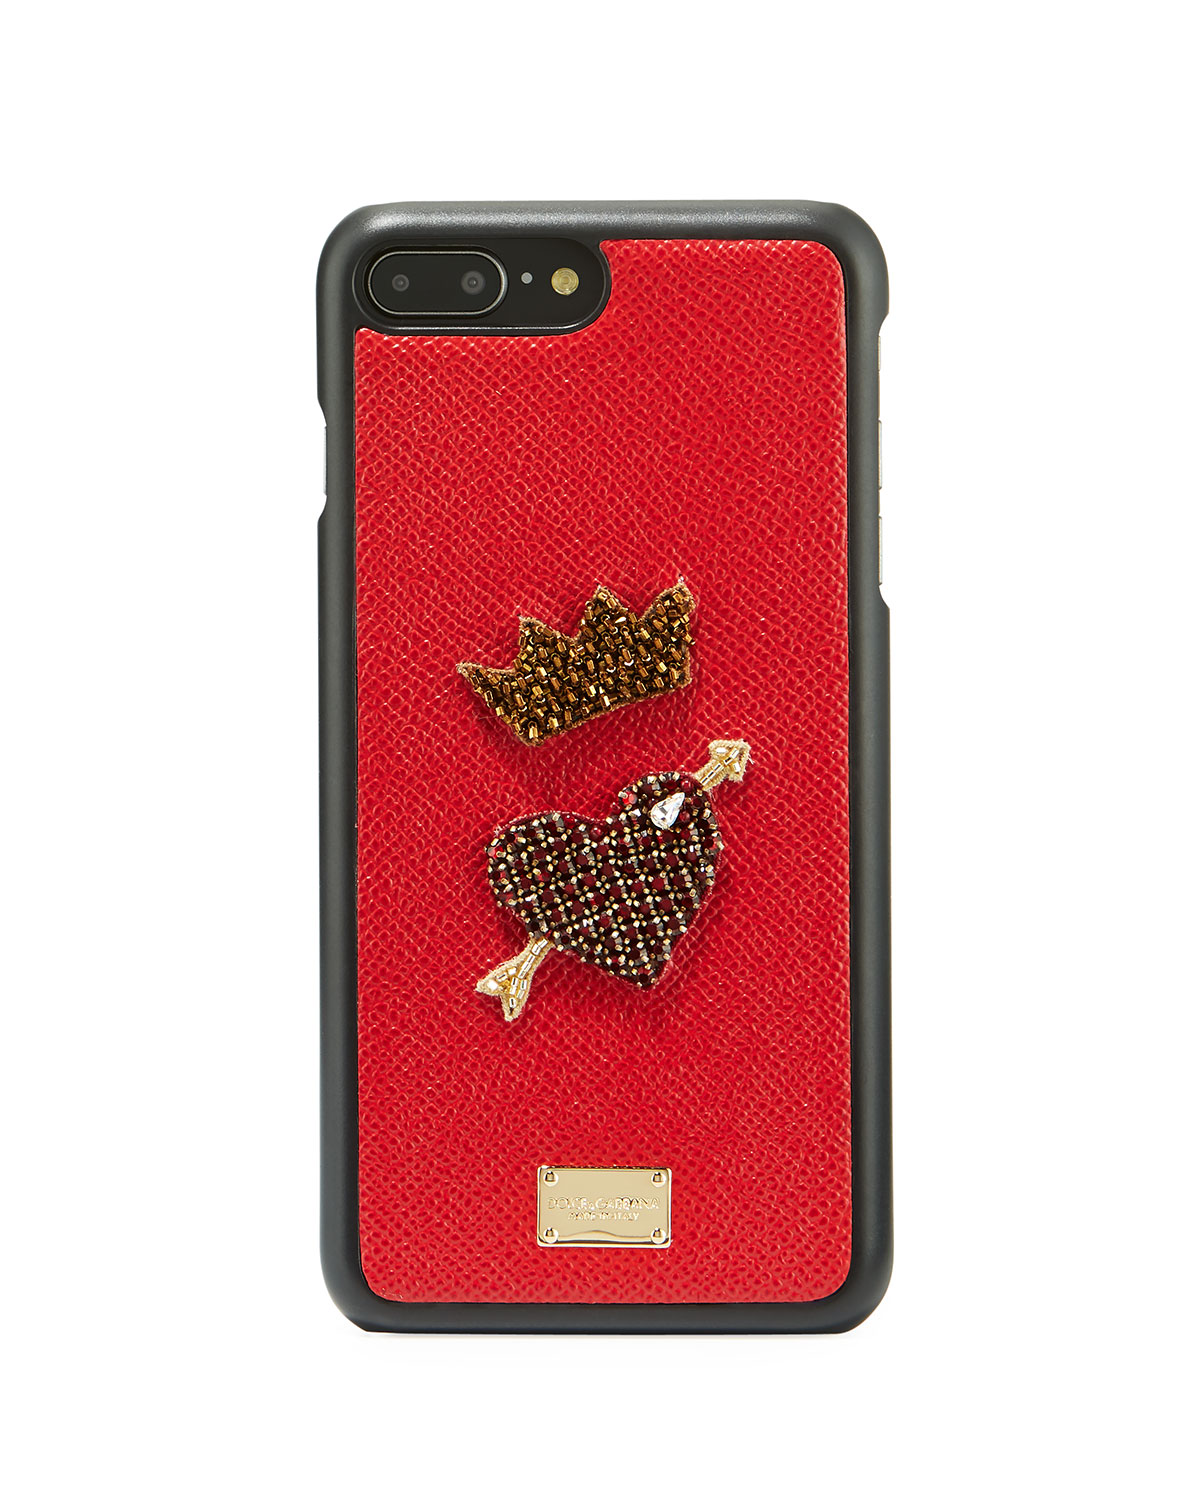 buy online 701f6 78352 Queen Of Hearts St. Dauphine Phone Case for iPhone® 7/8 Plus